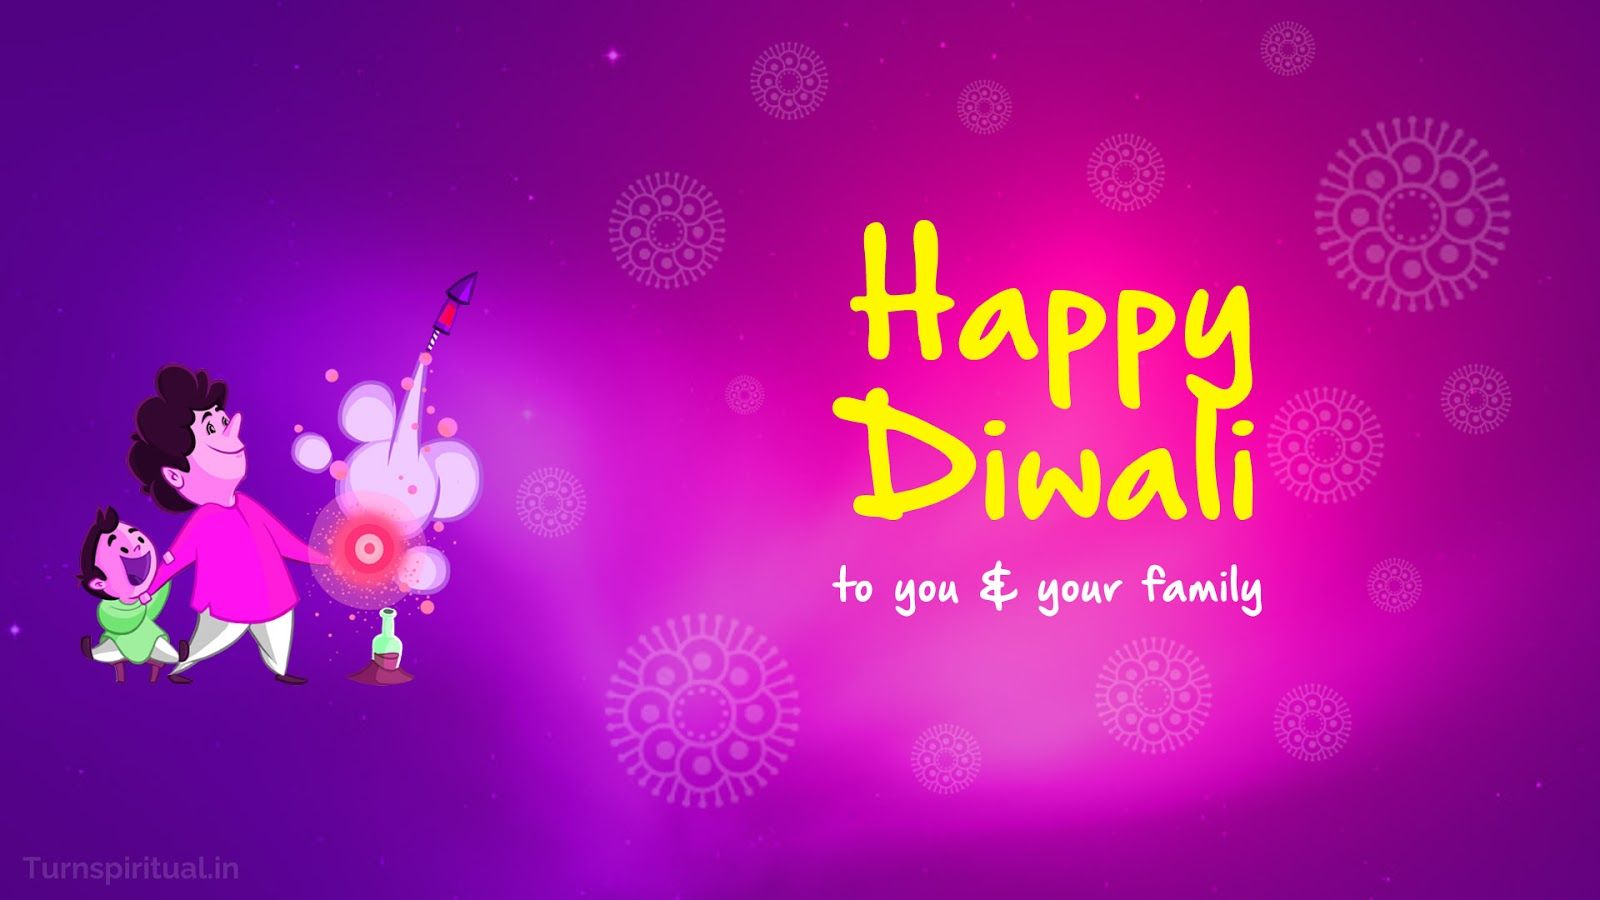 Happy Diwali Deepavali To You And Your Family Diwali Wishes